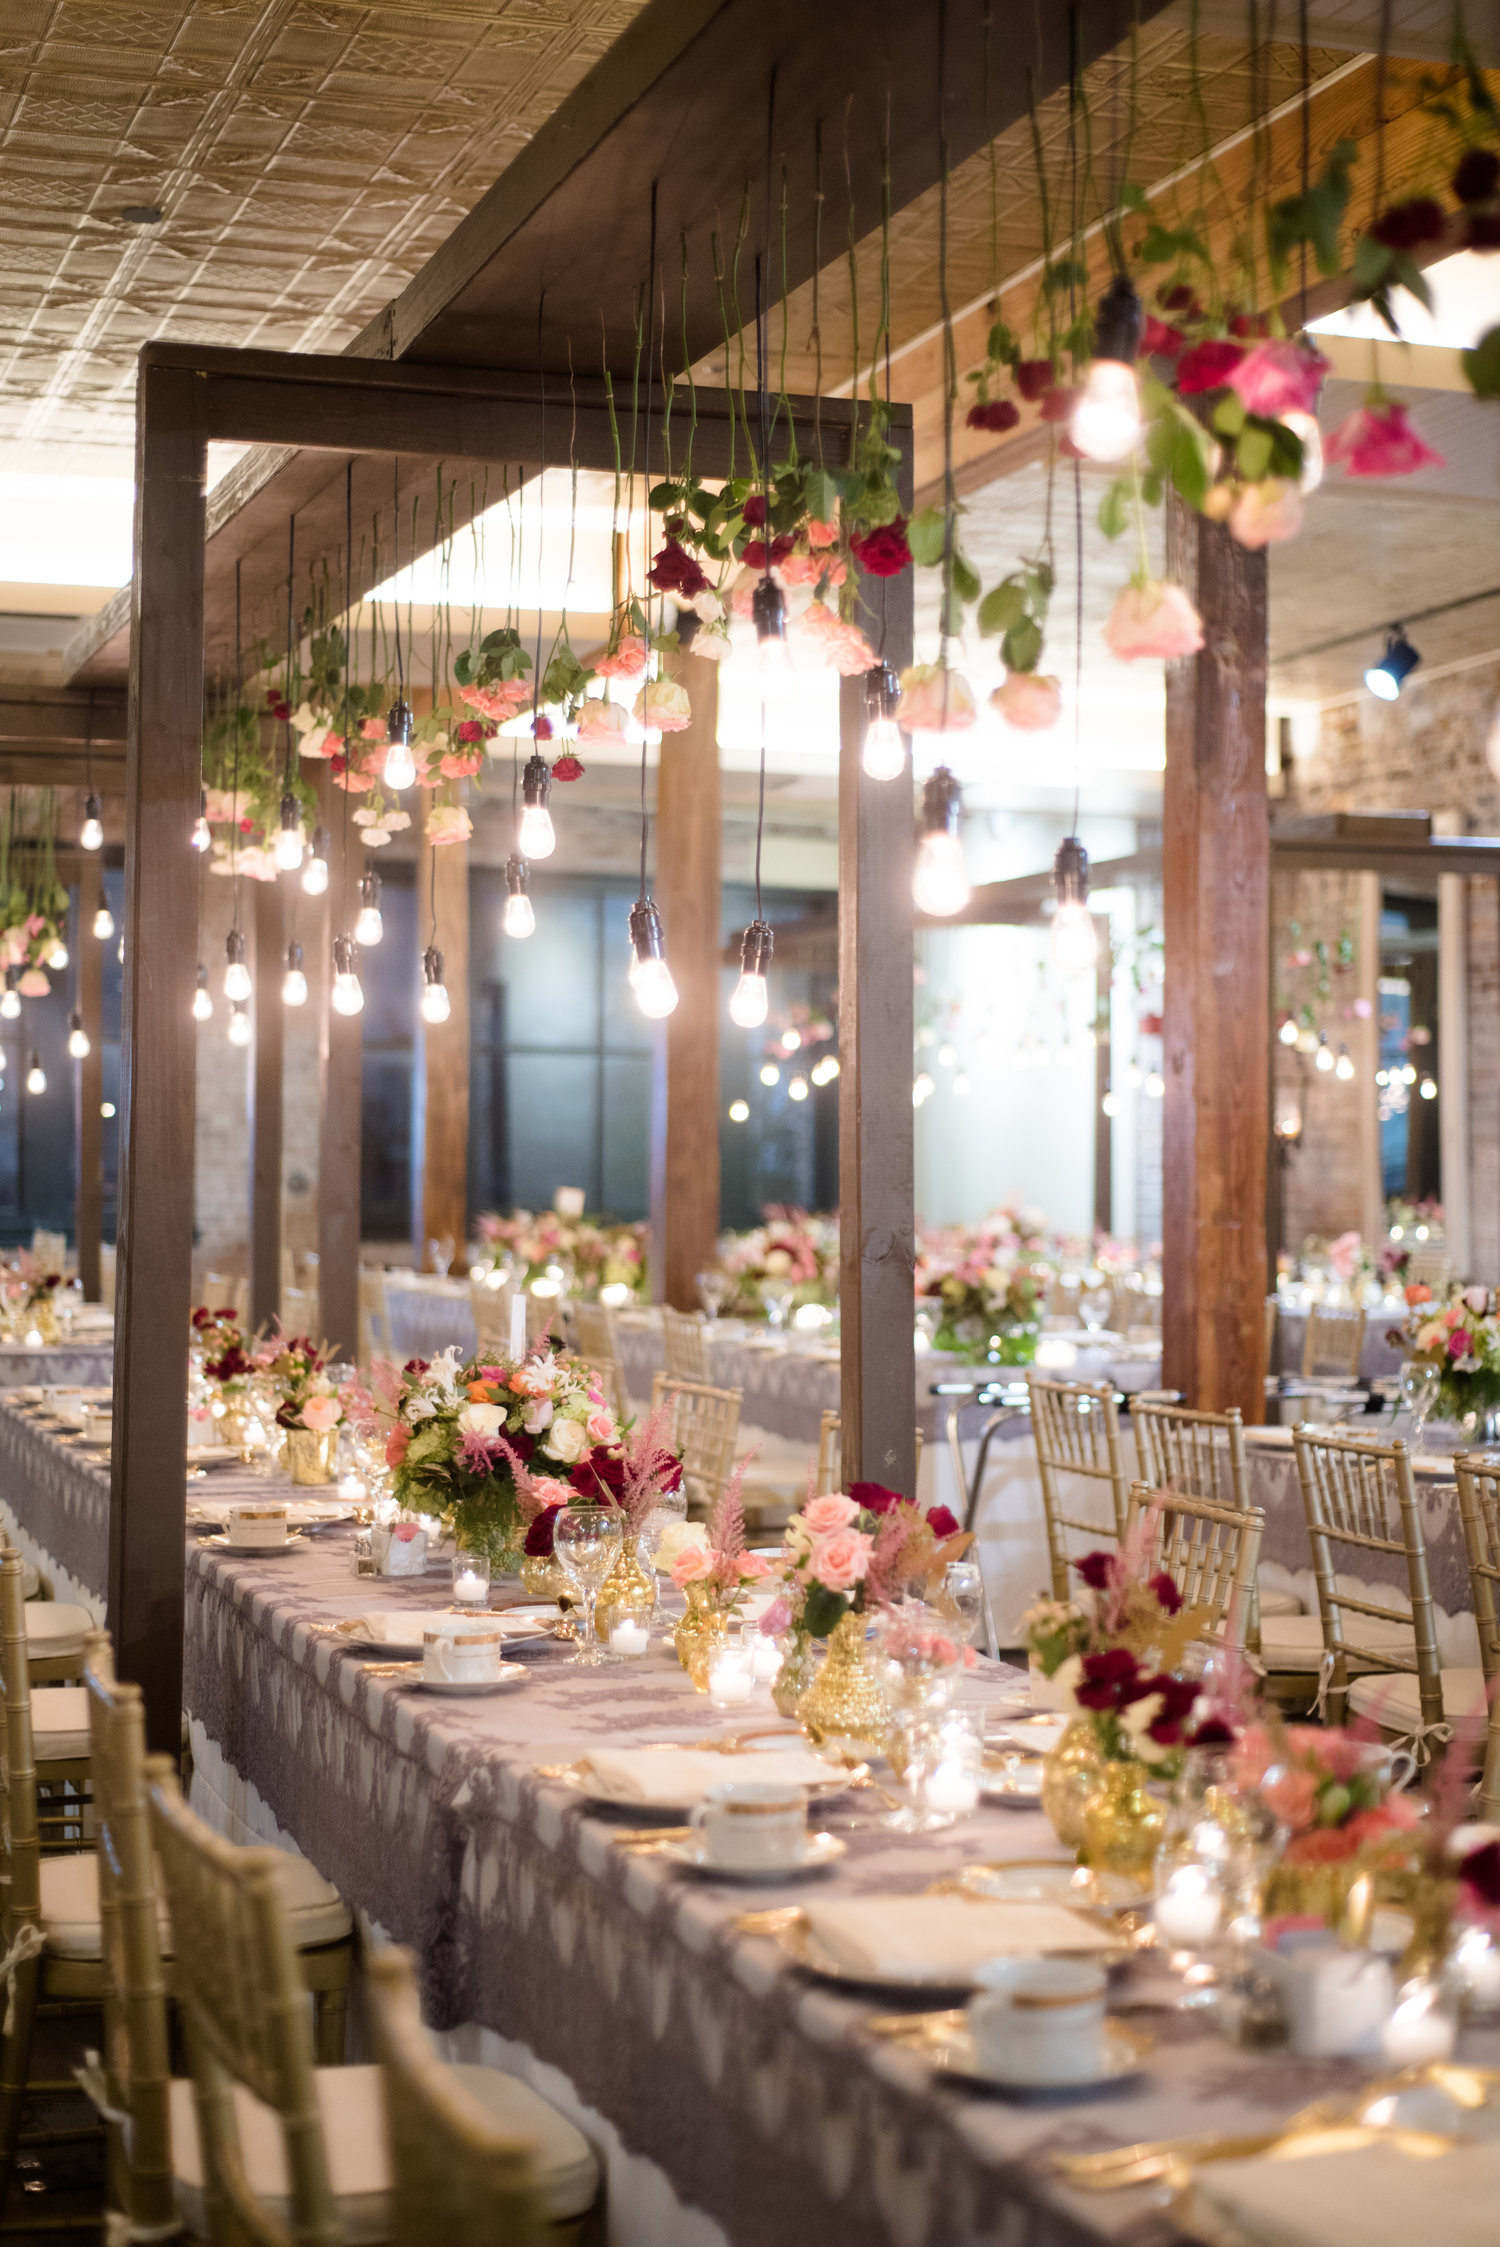 long wedding tables with lace table cloths and suspending roses overhead with hanging lightbulbs